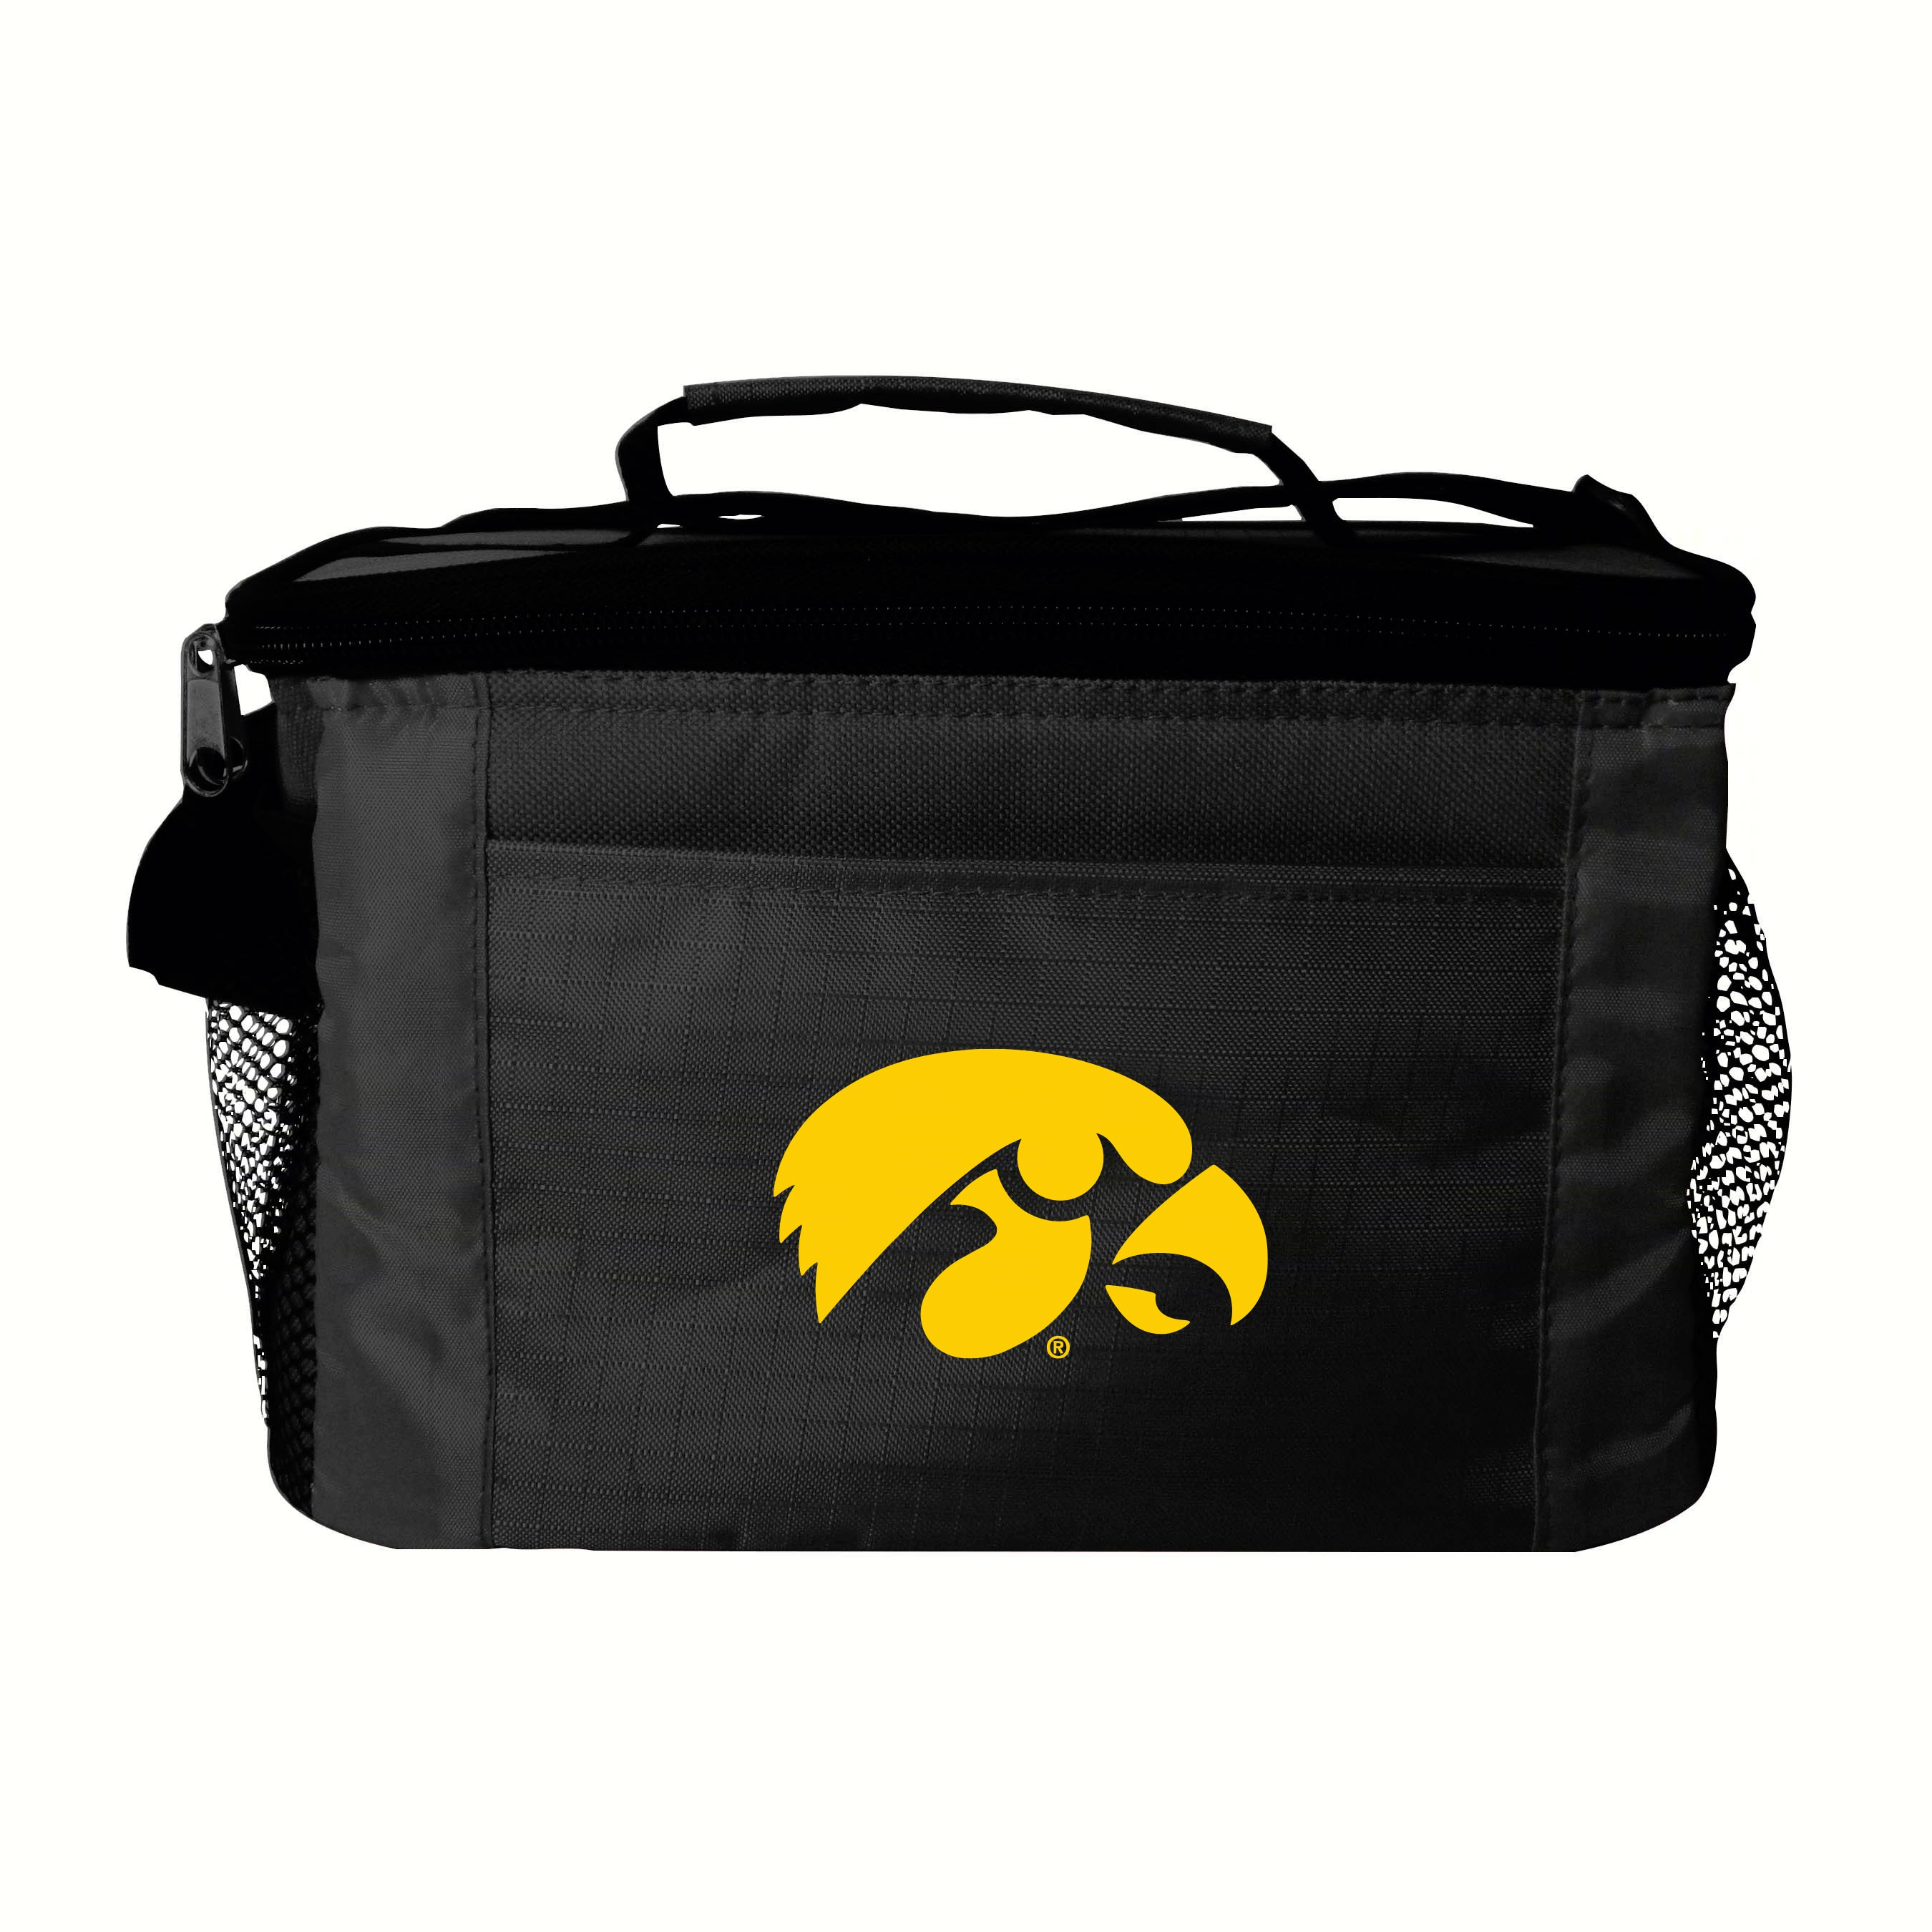 Kooler Bag Iowa Hawkeyes (Holds a 6 Pack)